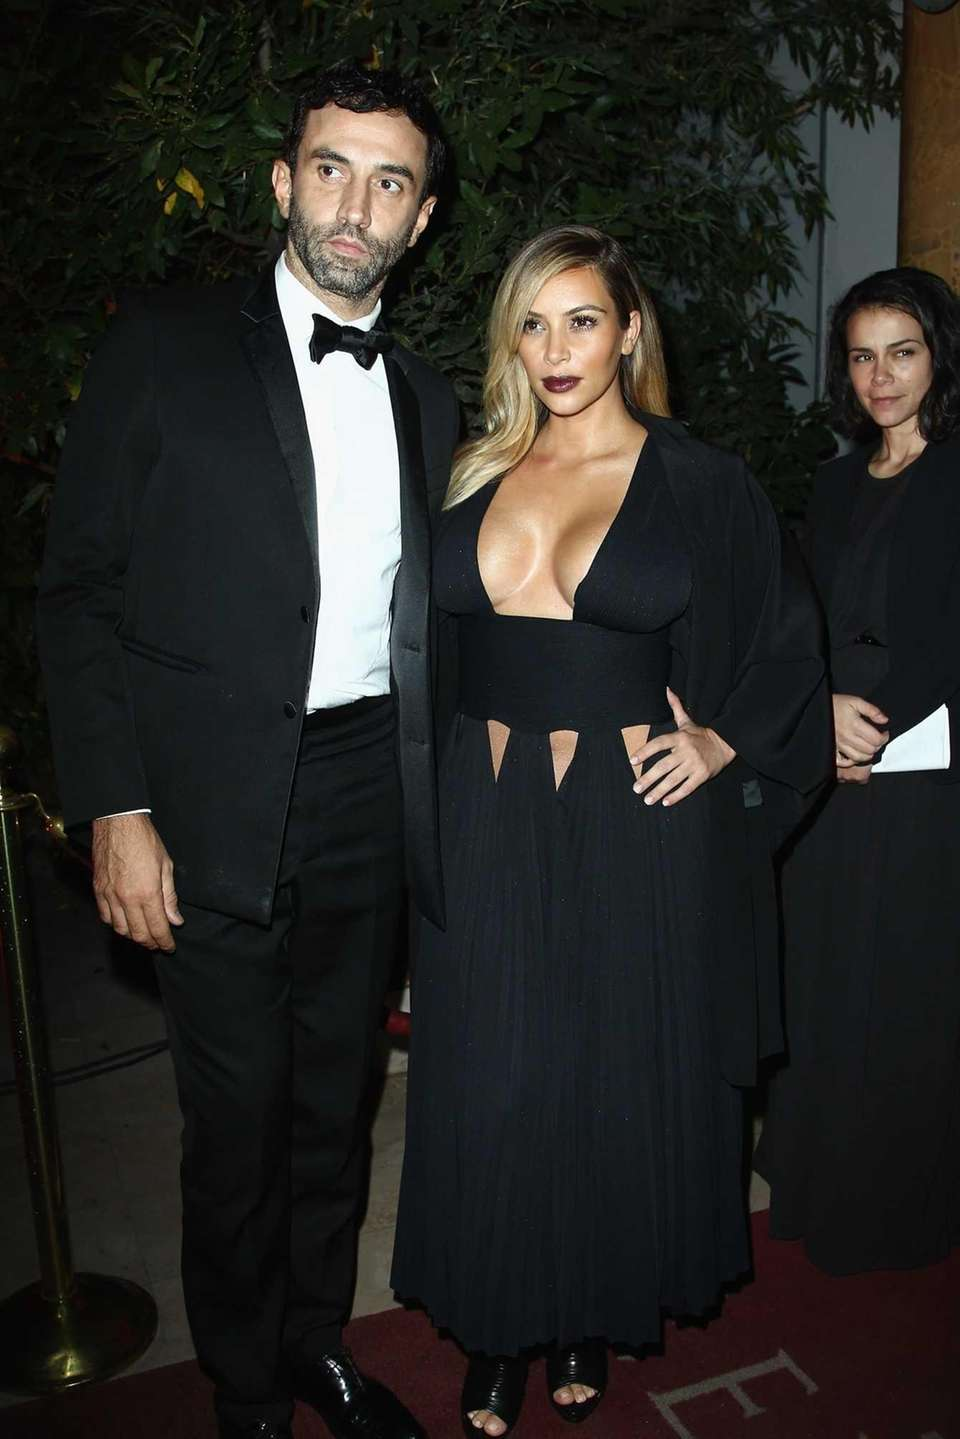 Givenchy designer Riccardo Tisci and Kim Kardashian attend